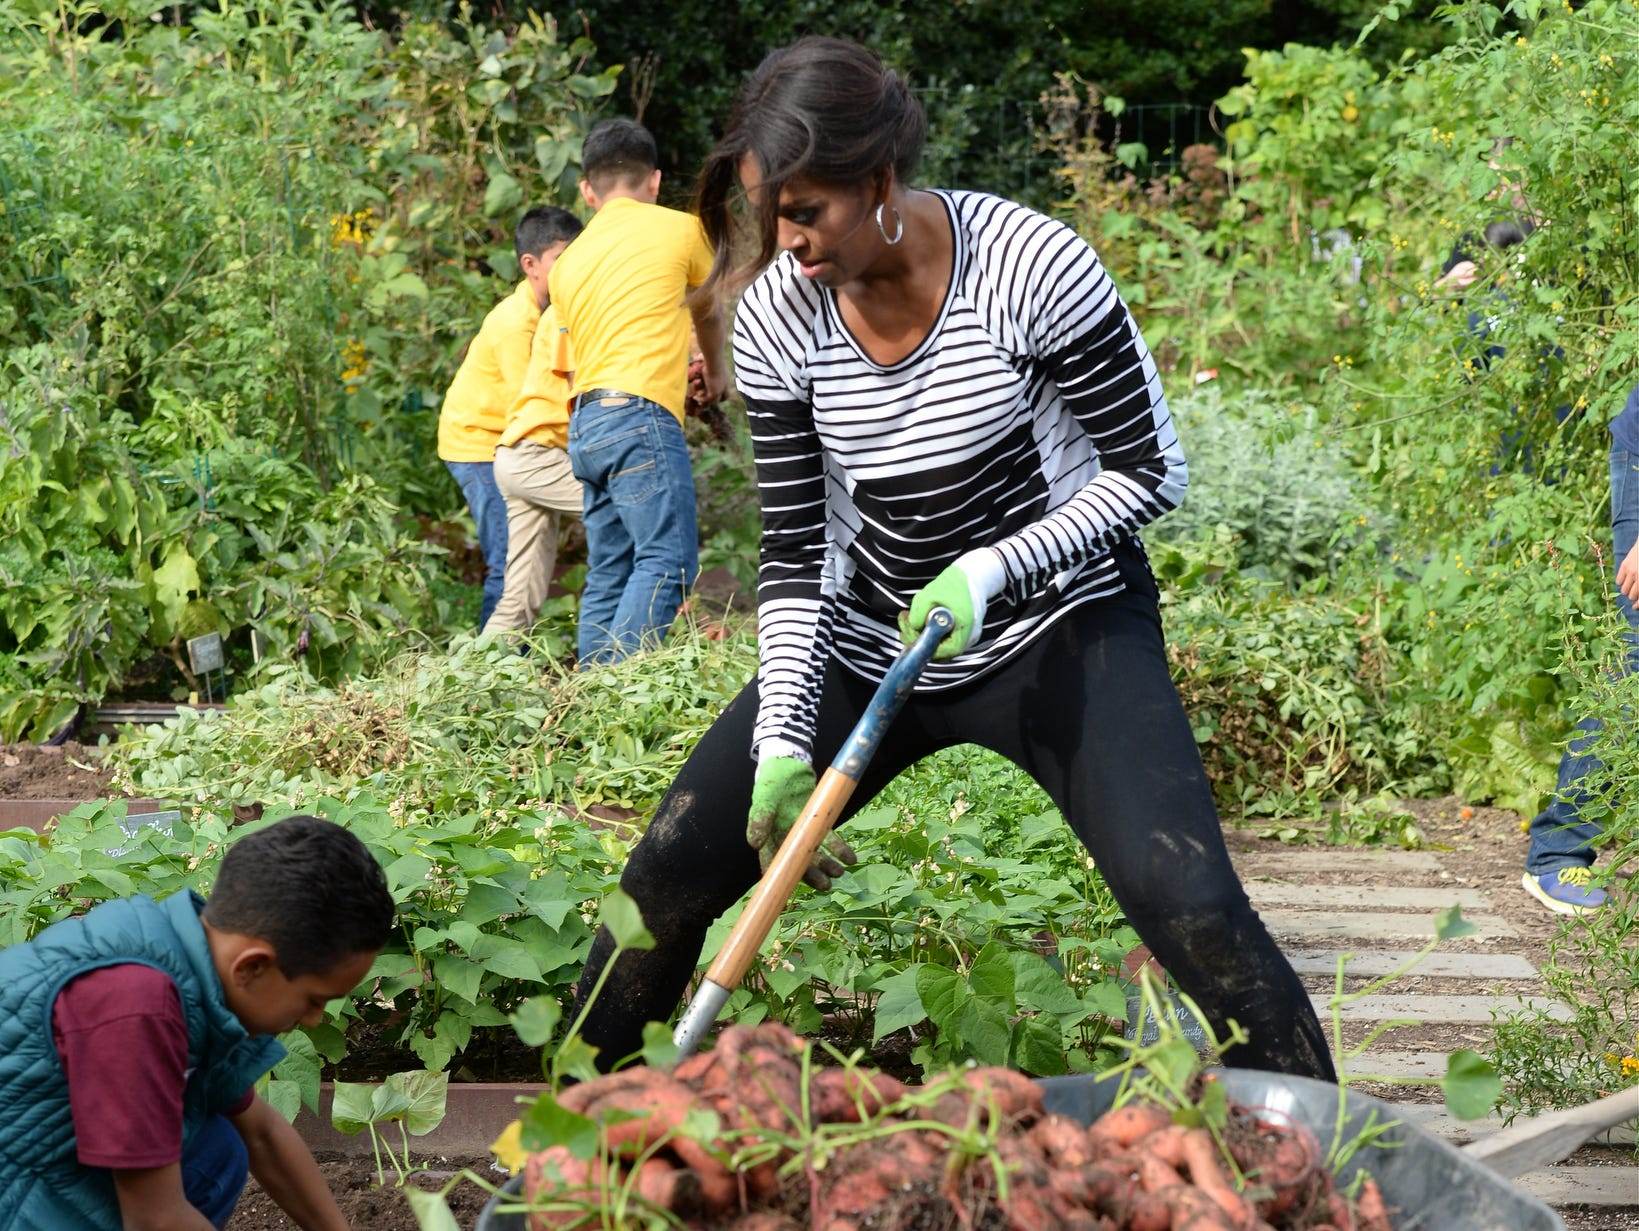 10/14/14 3:31:44 PM -- Washington, DC, U.S.A  -- First Lady Michelle Obama and school children work on the annual fall harvest of the White House Kitchen Garden. --    Photo by H. Darr Beiser, USA TODAY Staff ORG XMIT:  HB 131868 WHgarden 10/14/2014 (Via OlyDrop)